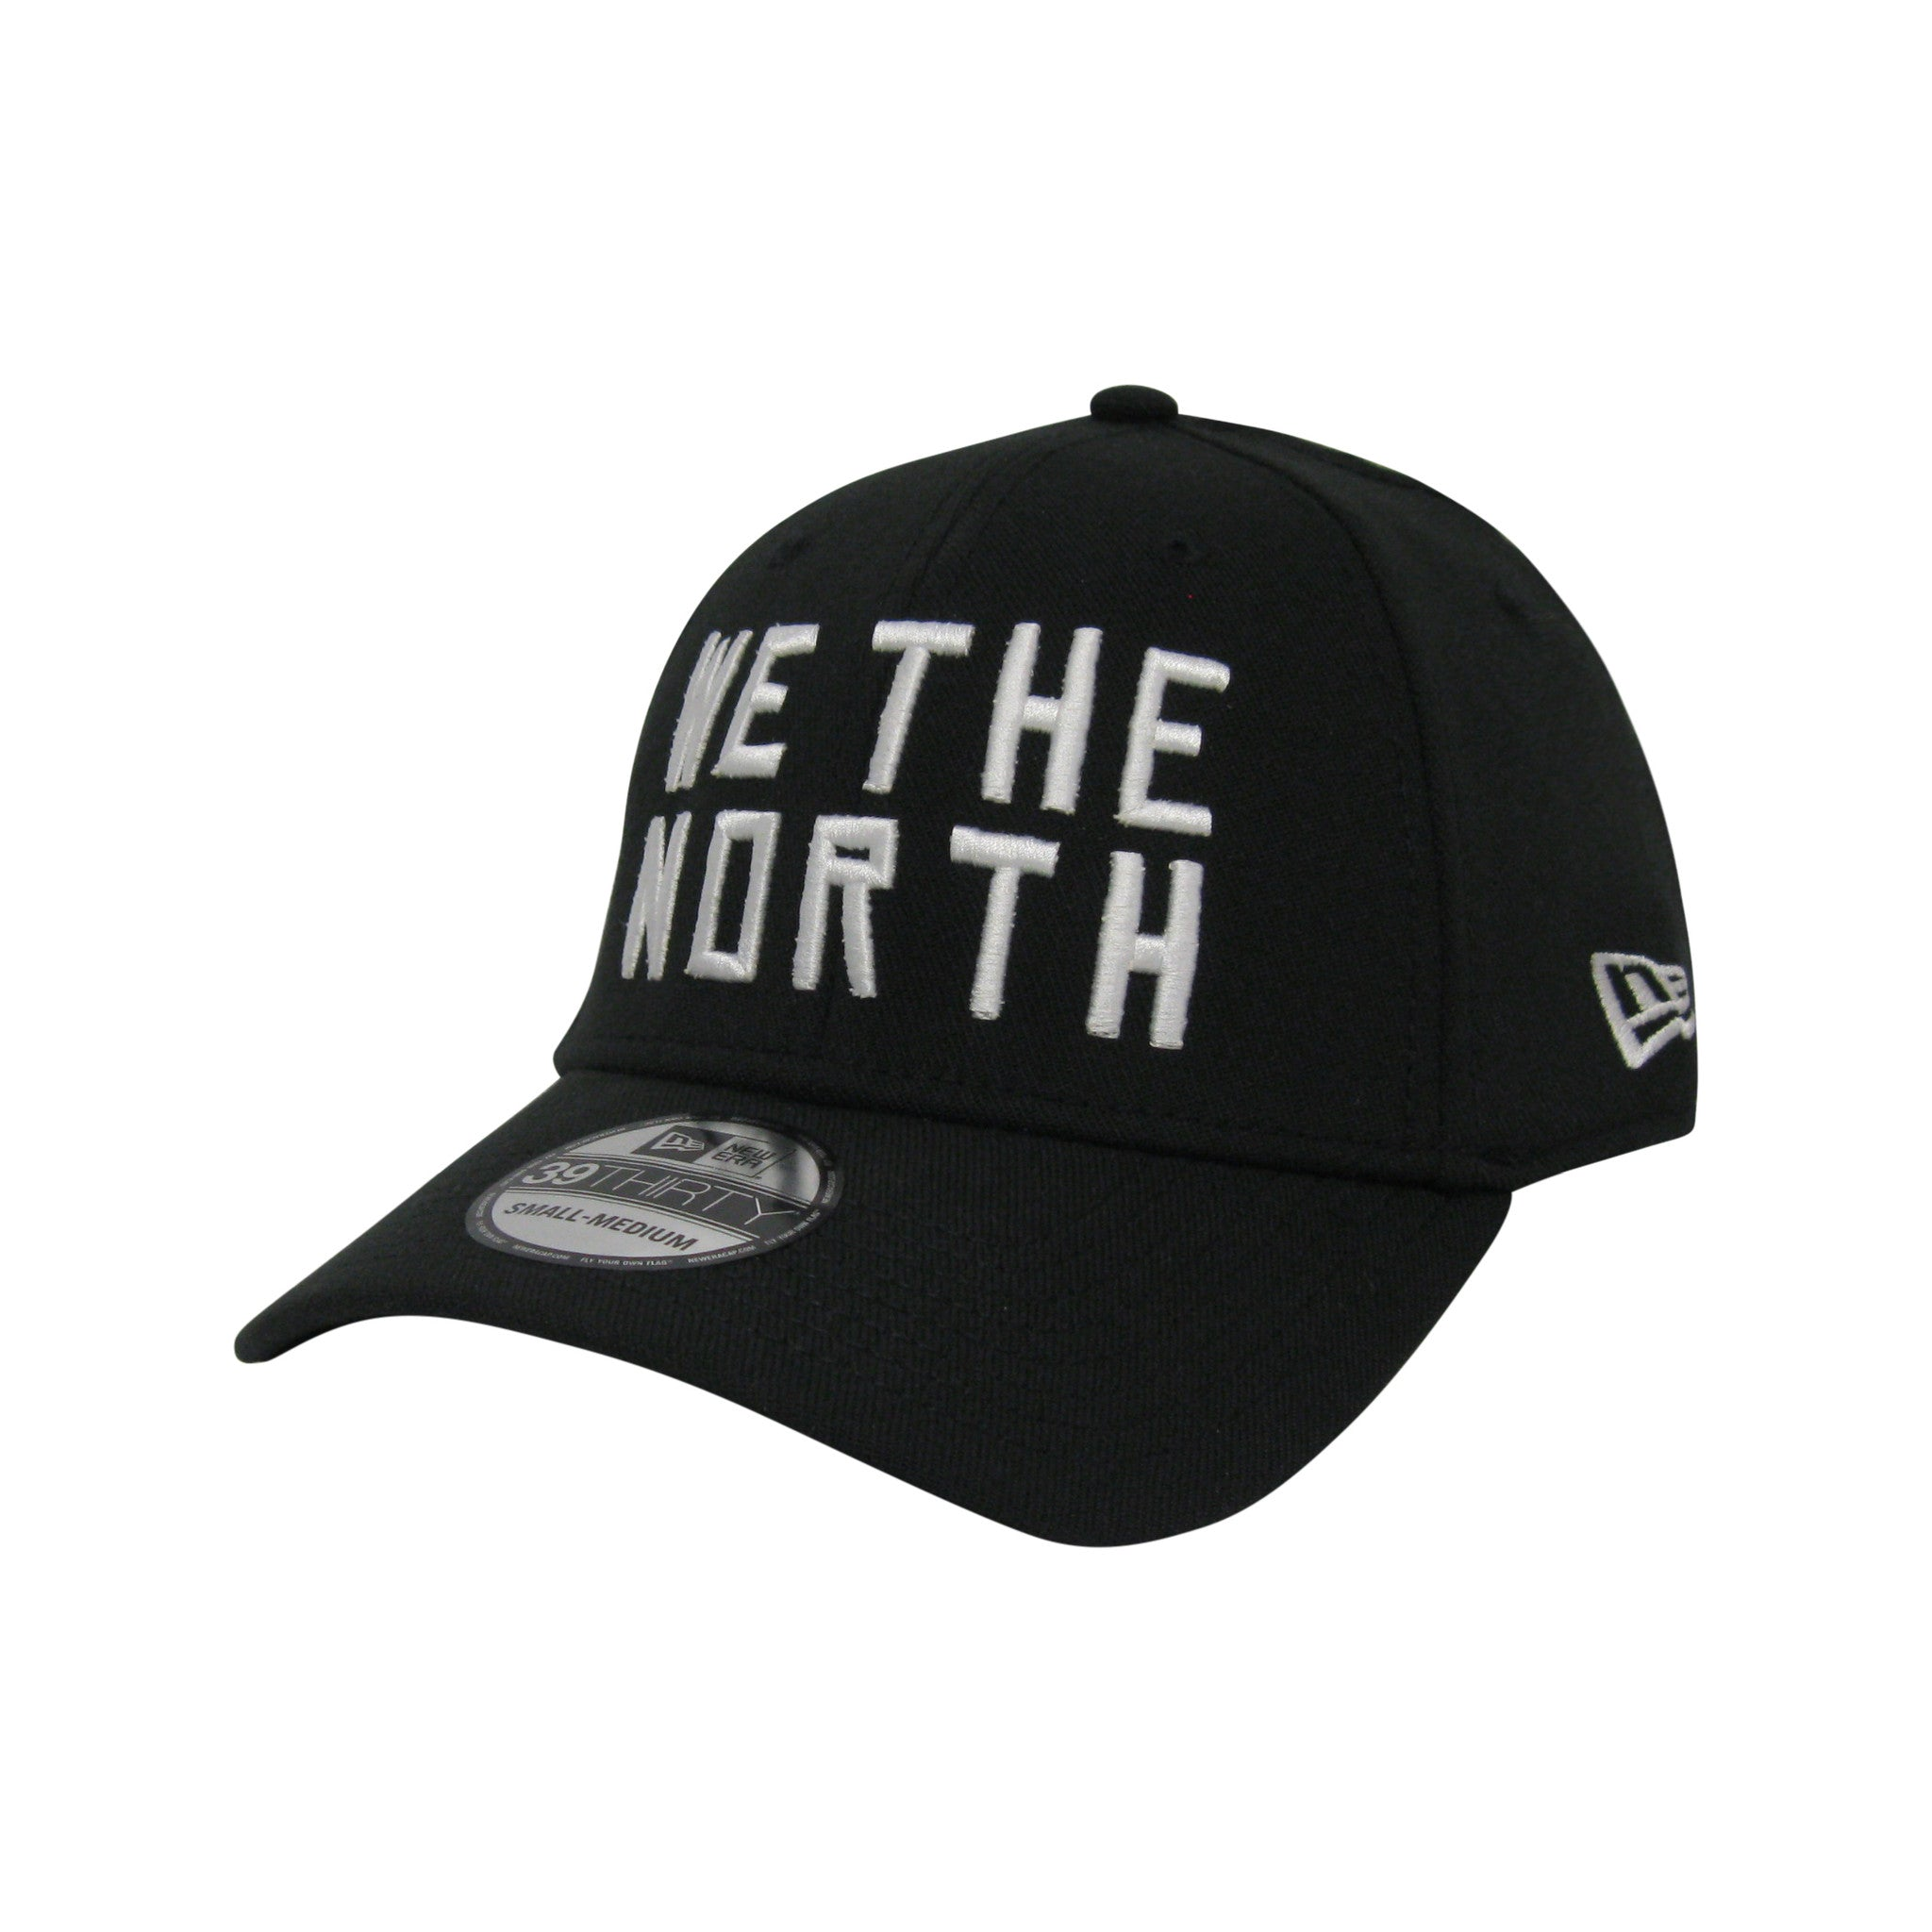 d36c319a4 good cowboys new era mens pigskin knit hat gray white 44c89 81aa7; low cost  toronto raptors new era mens we the north 3930 stretch fit hat shop 9cf3c